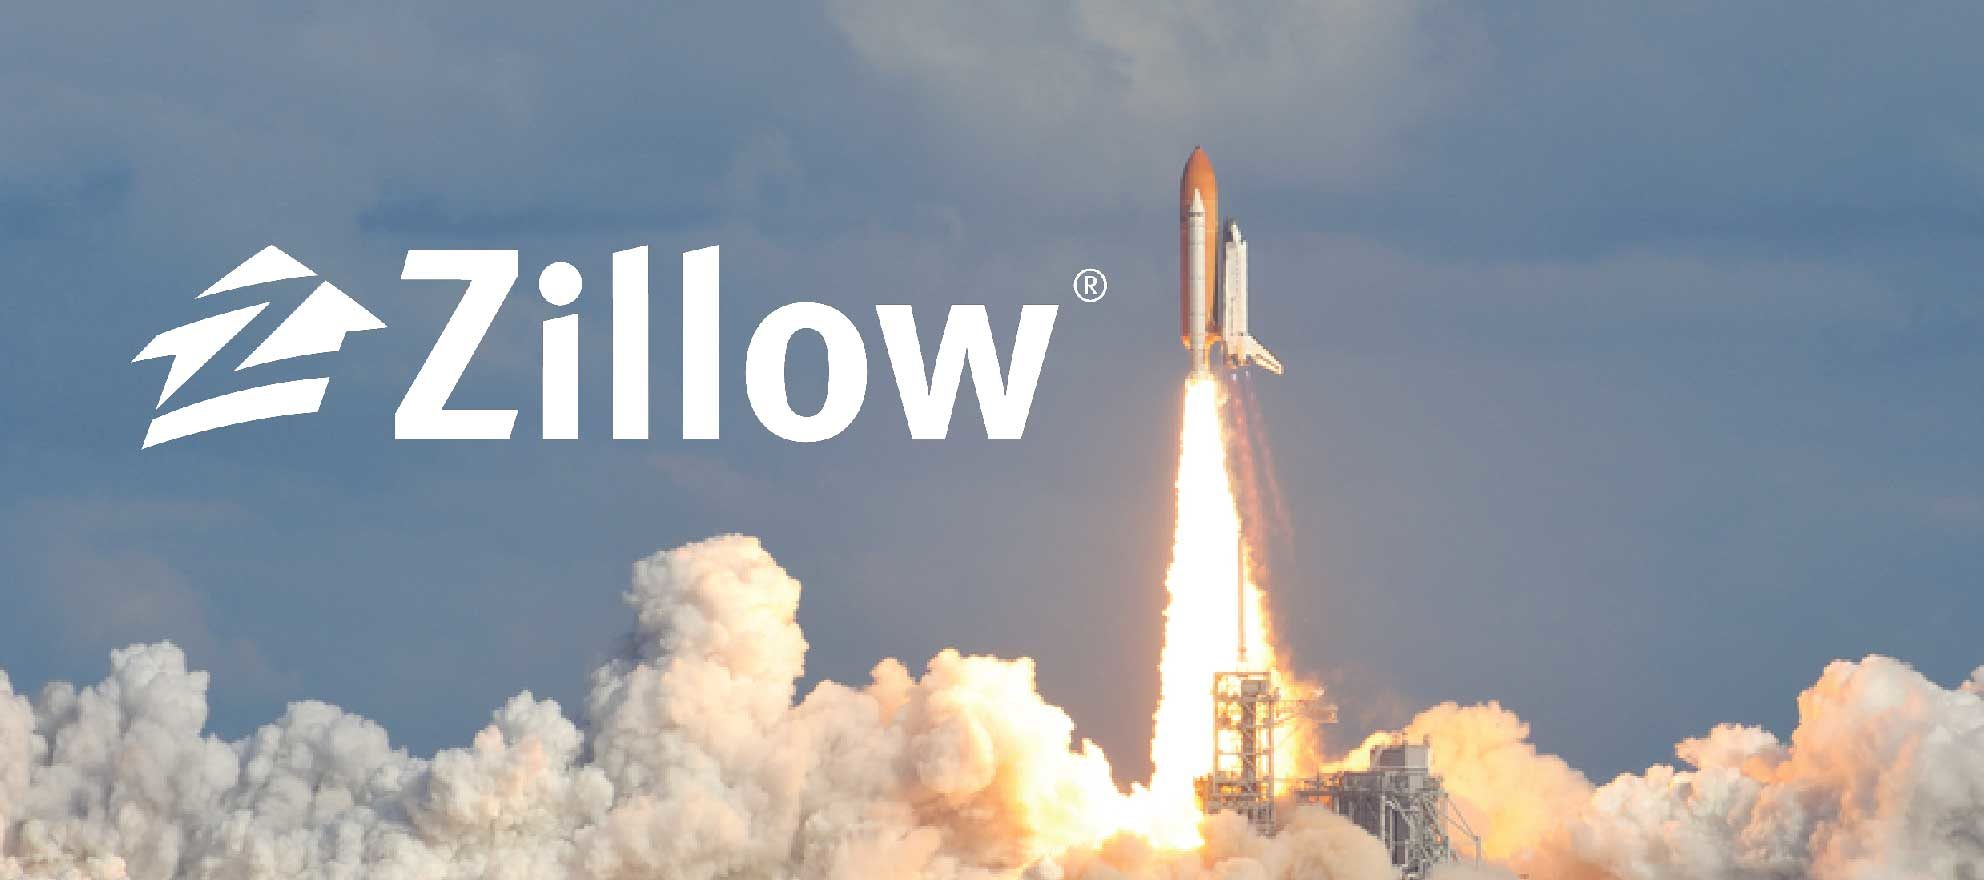 Zillow's skyrocketing growth continues